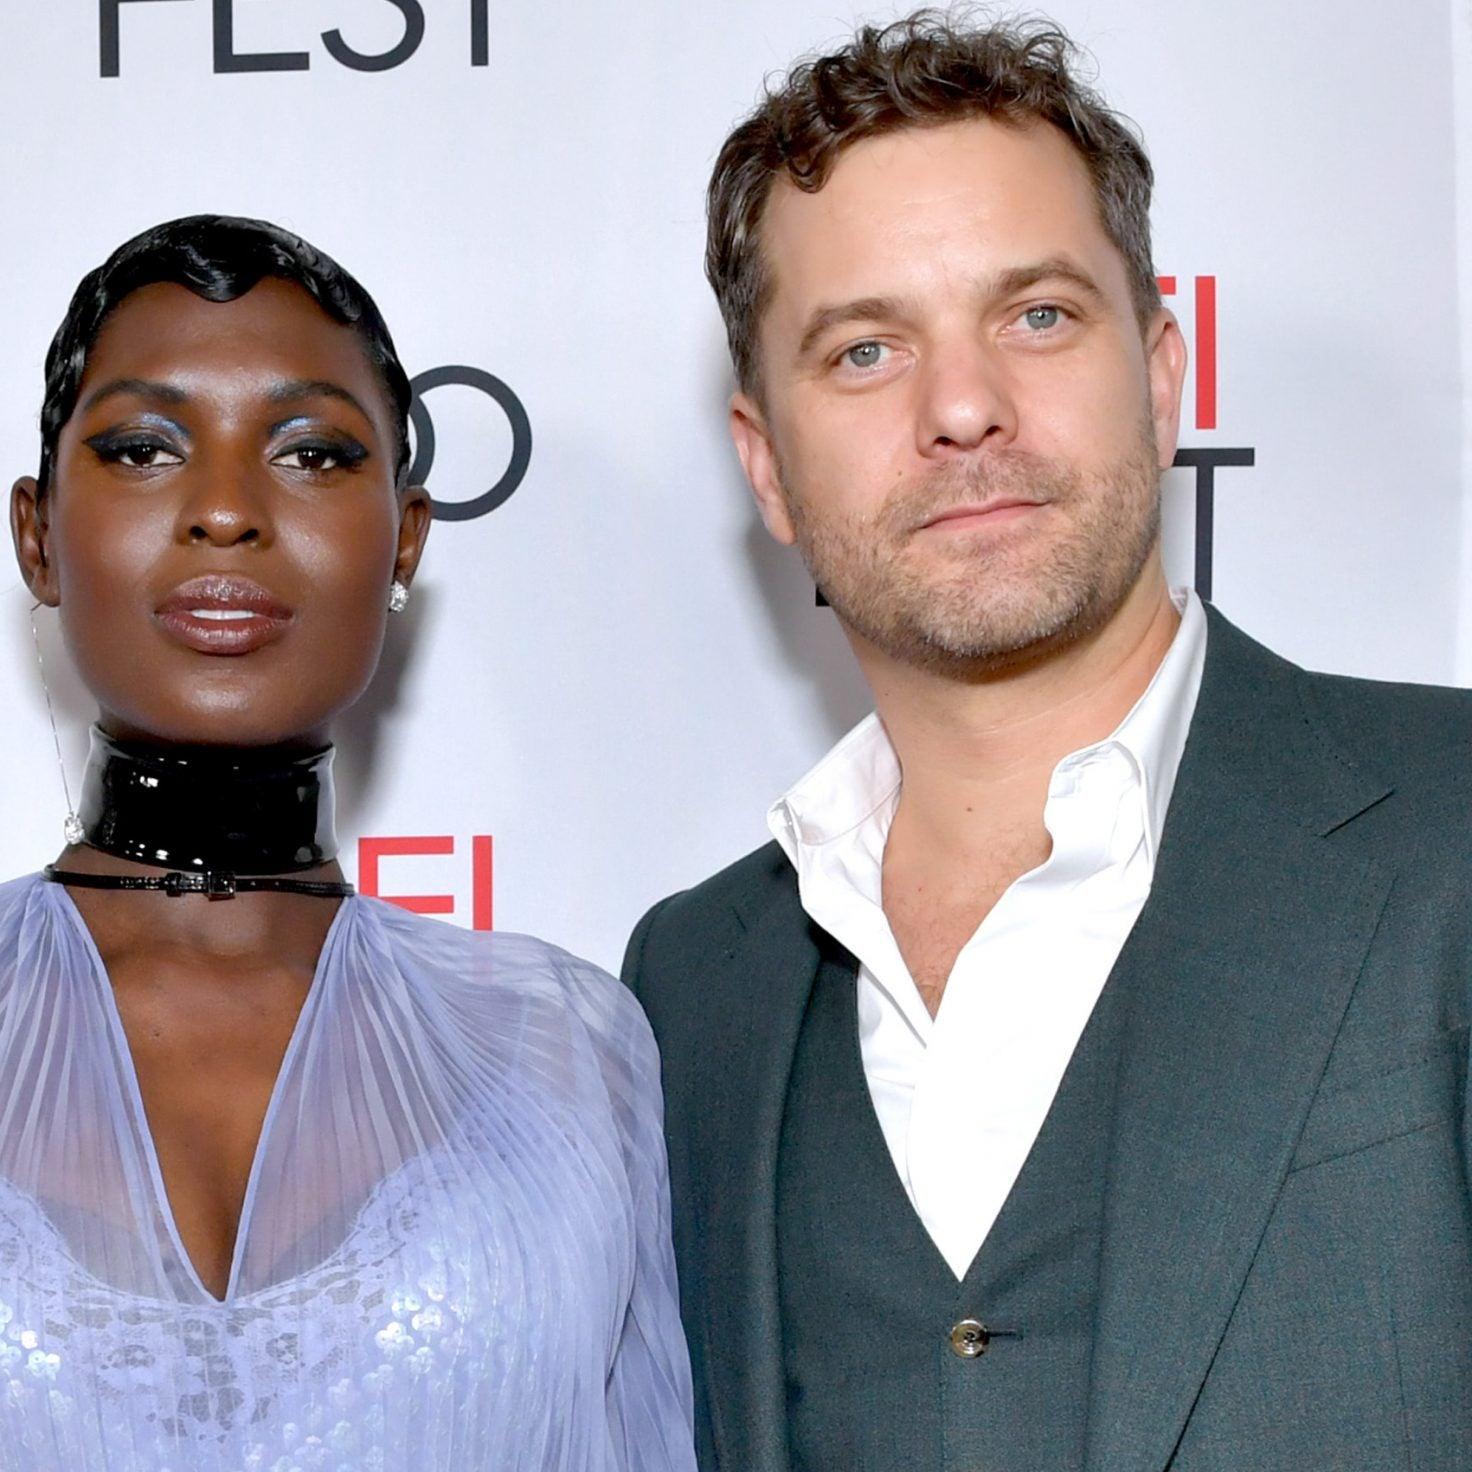 She's A Whole Wife! 'Queen & Slim' Star Jodie Turner-Smith Marries Actor Joshua Jackson